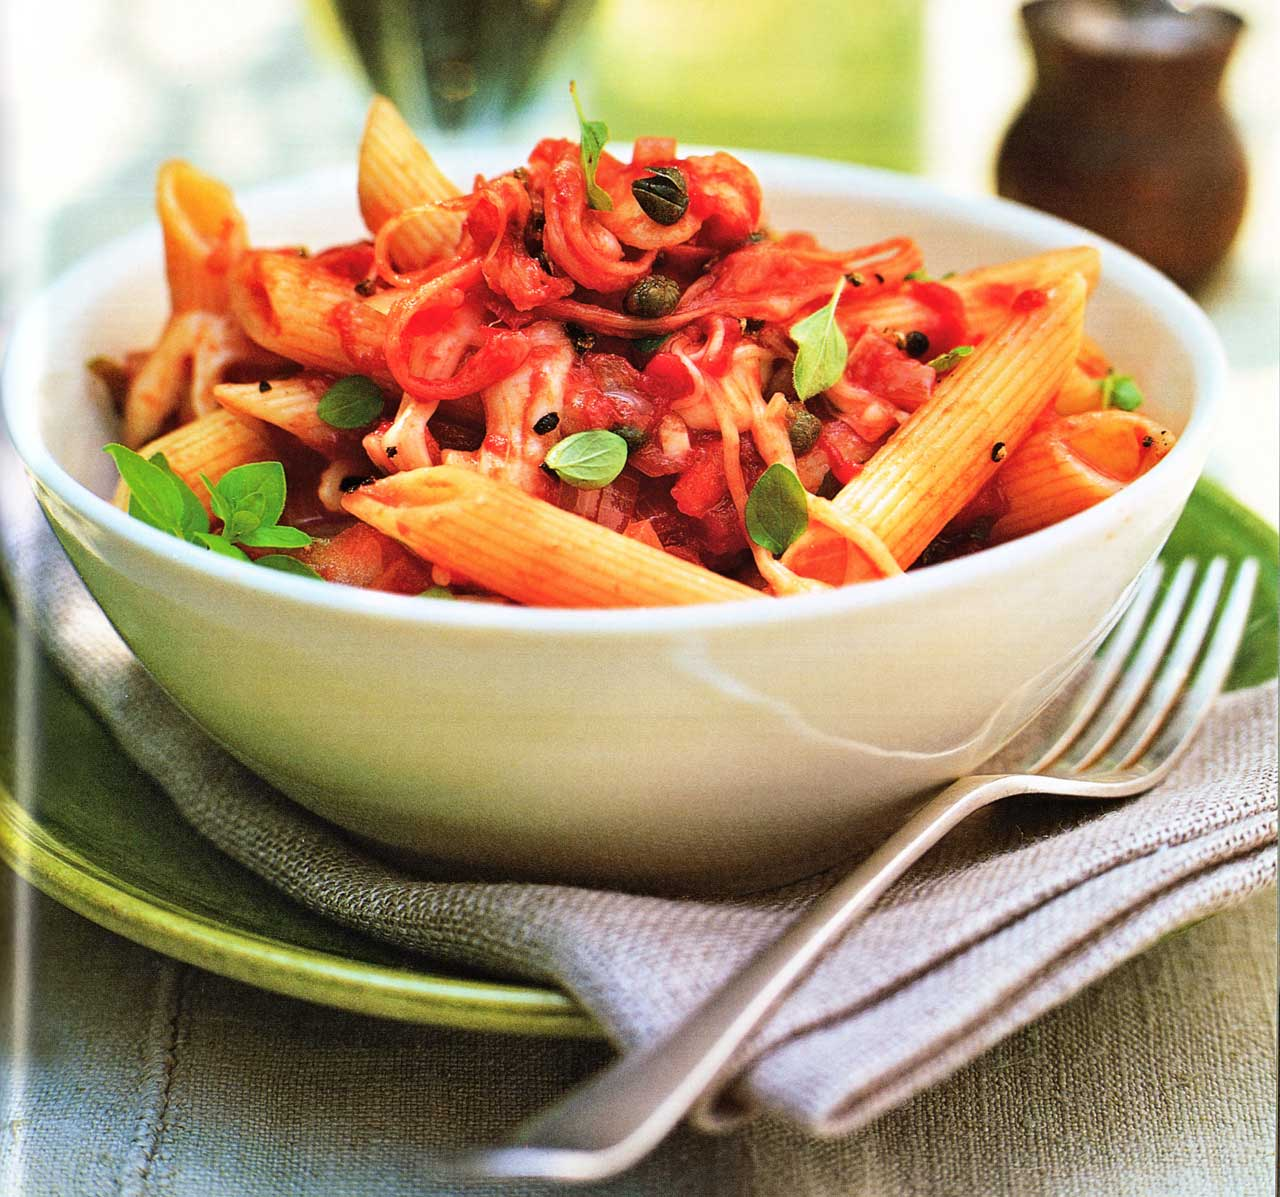 Easy Pasta Recipe-Penne With Mozzarella And Tomatoes www.eatopic.com